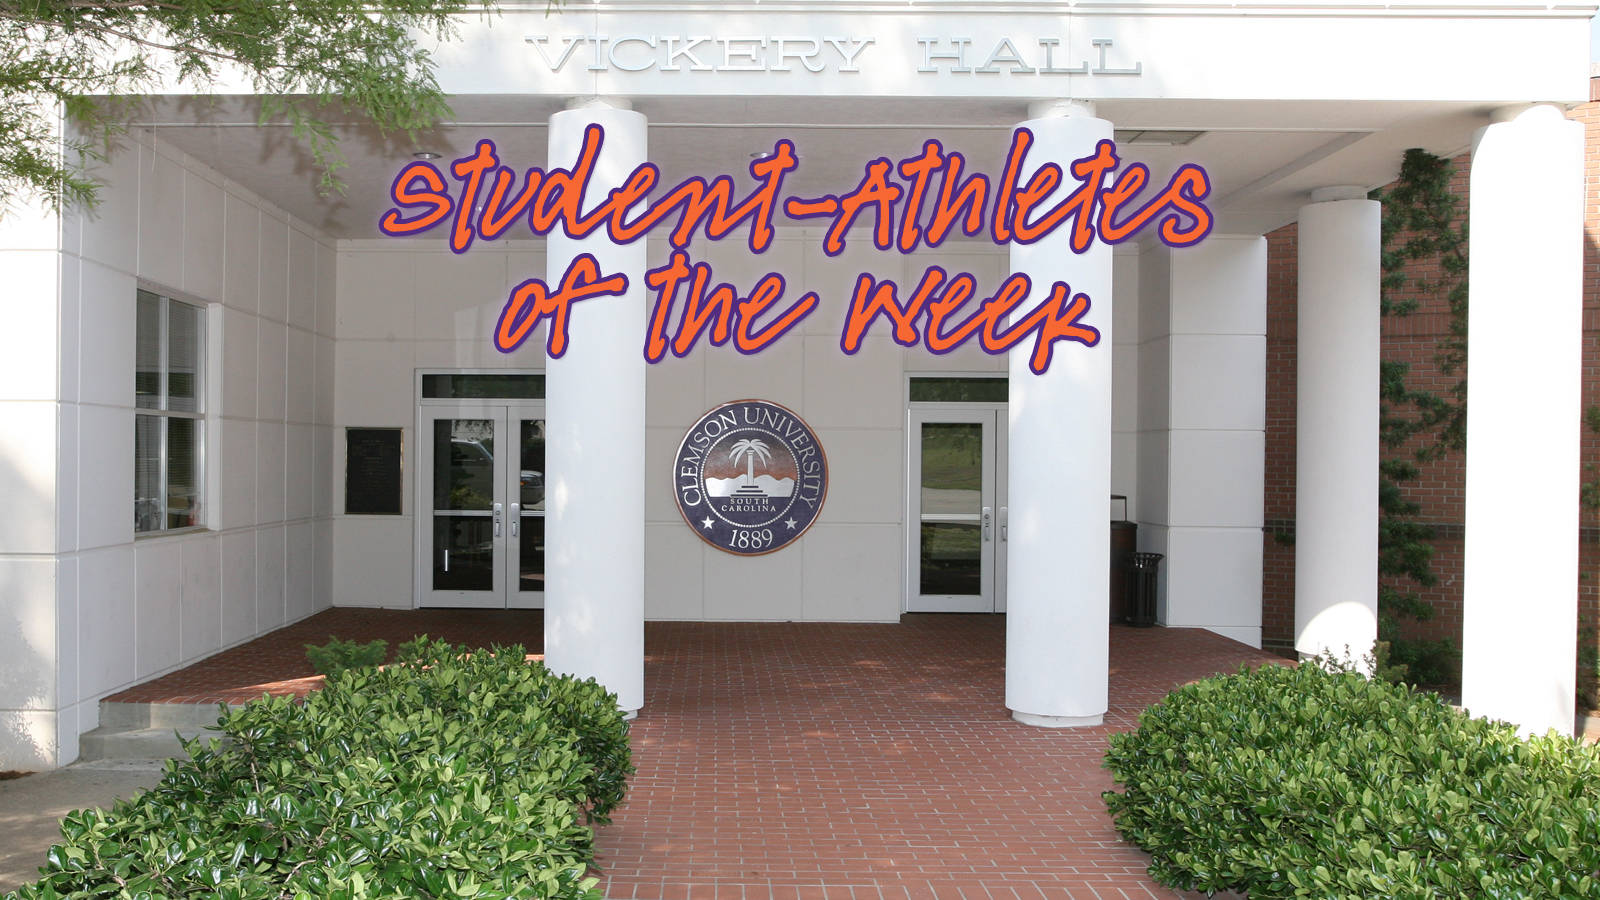 Vickery Hall's Student-Athletes of the Week: Sept. 16-22